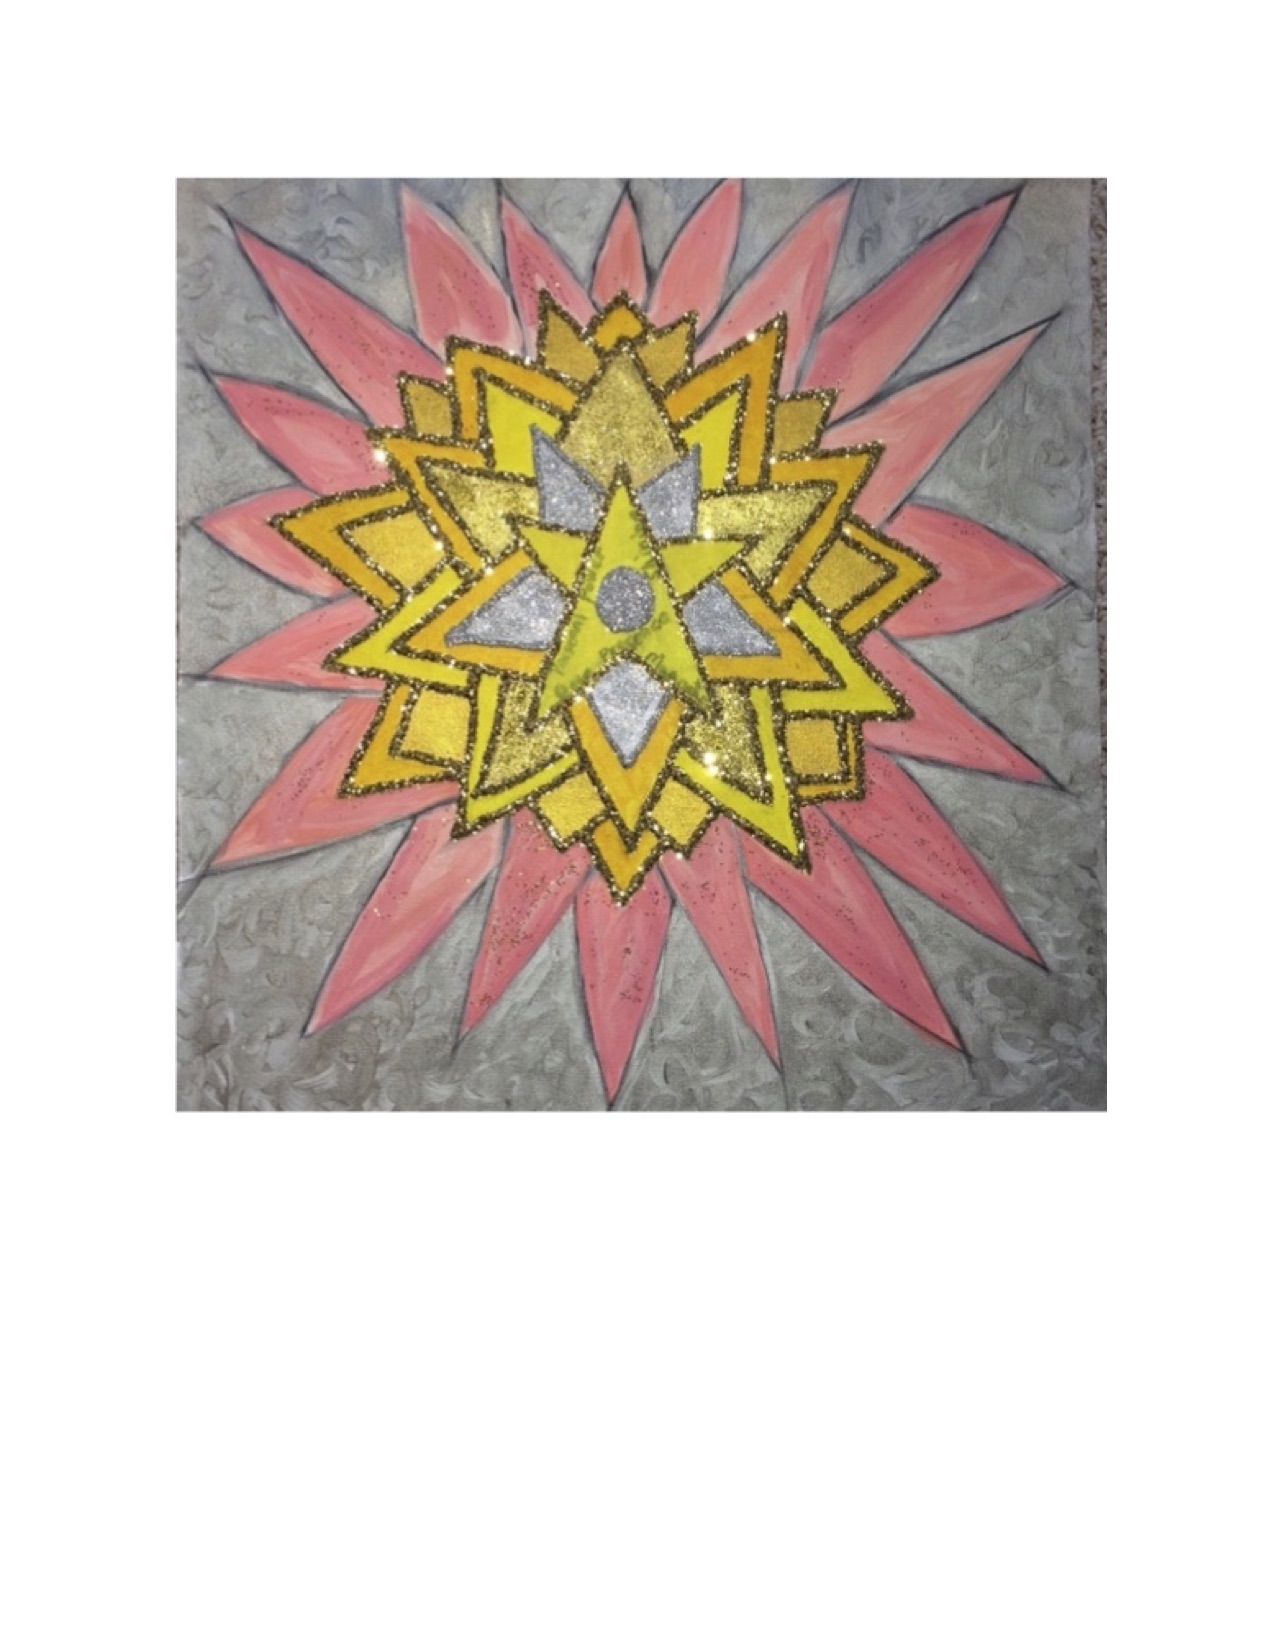 Soul Art Meditation Mat Workshop  guided by Elizabeth Fritz  Saturday May 6th 10am-2pm:  Investment for a Personalized Meditation Mat  $120 Includes all Materials